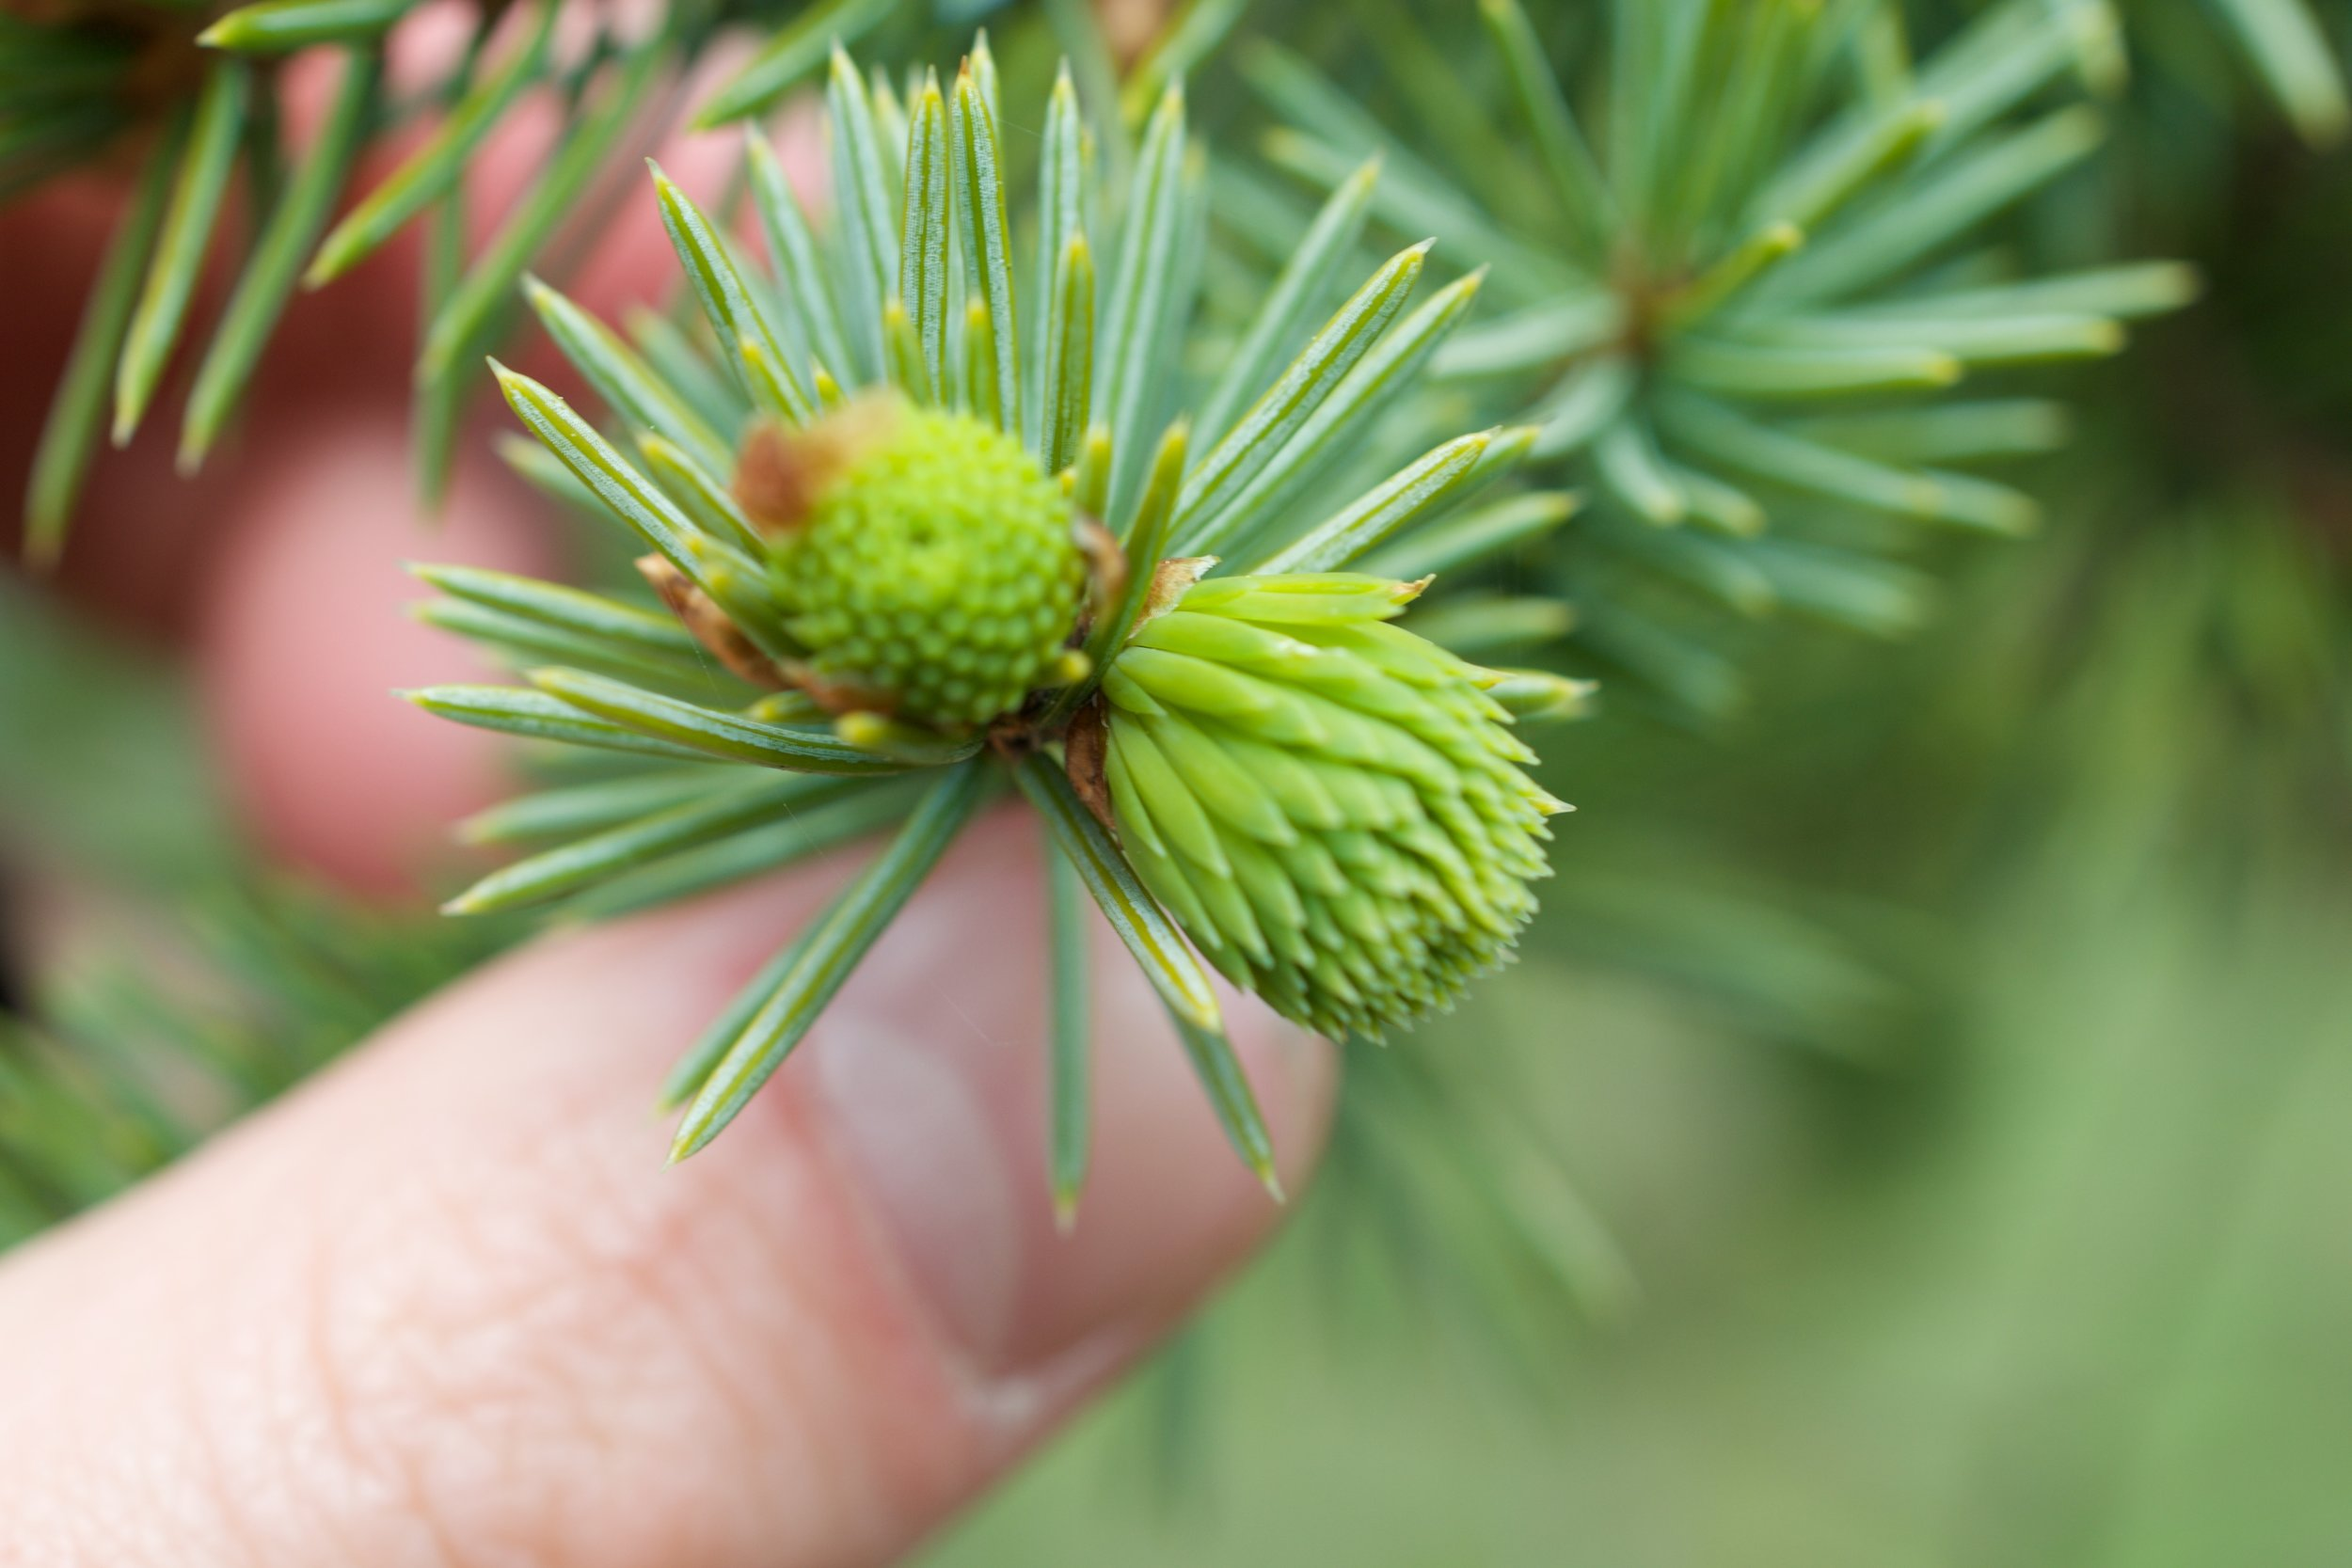 Harvesting spruce tips in the spring, remember again that this is the new growth that the tree relies on for fresh photosynthesis. Take sparingly.